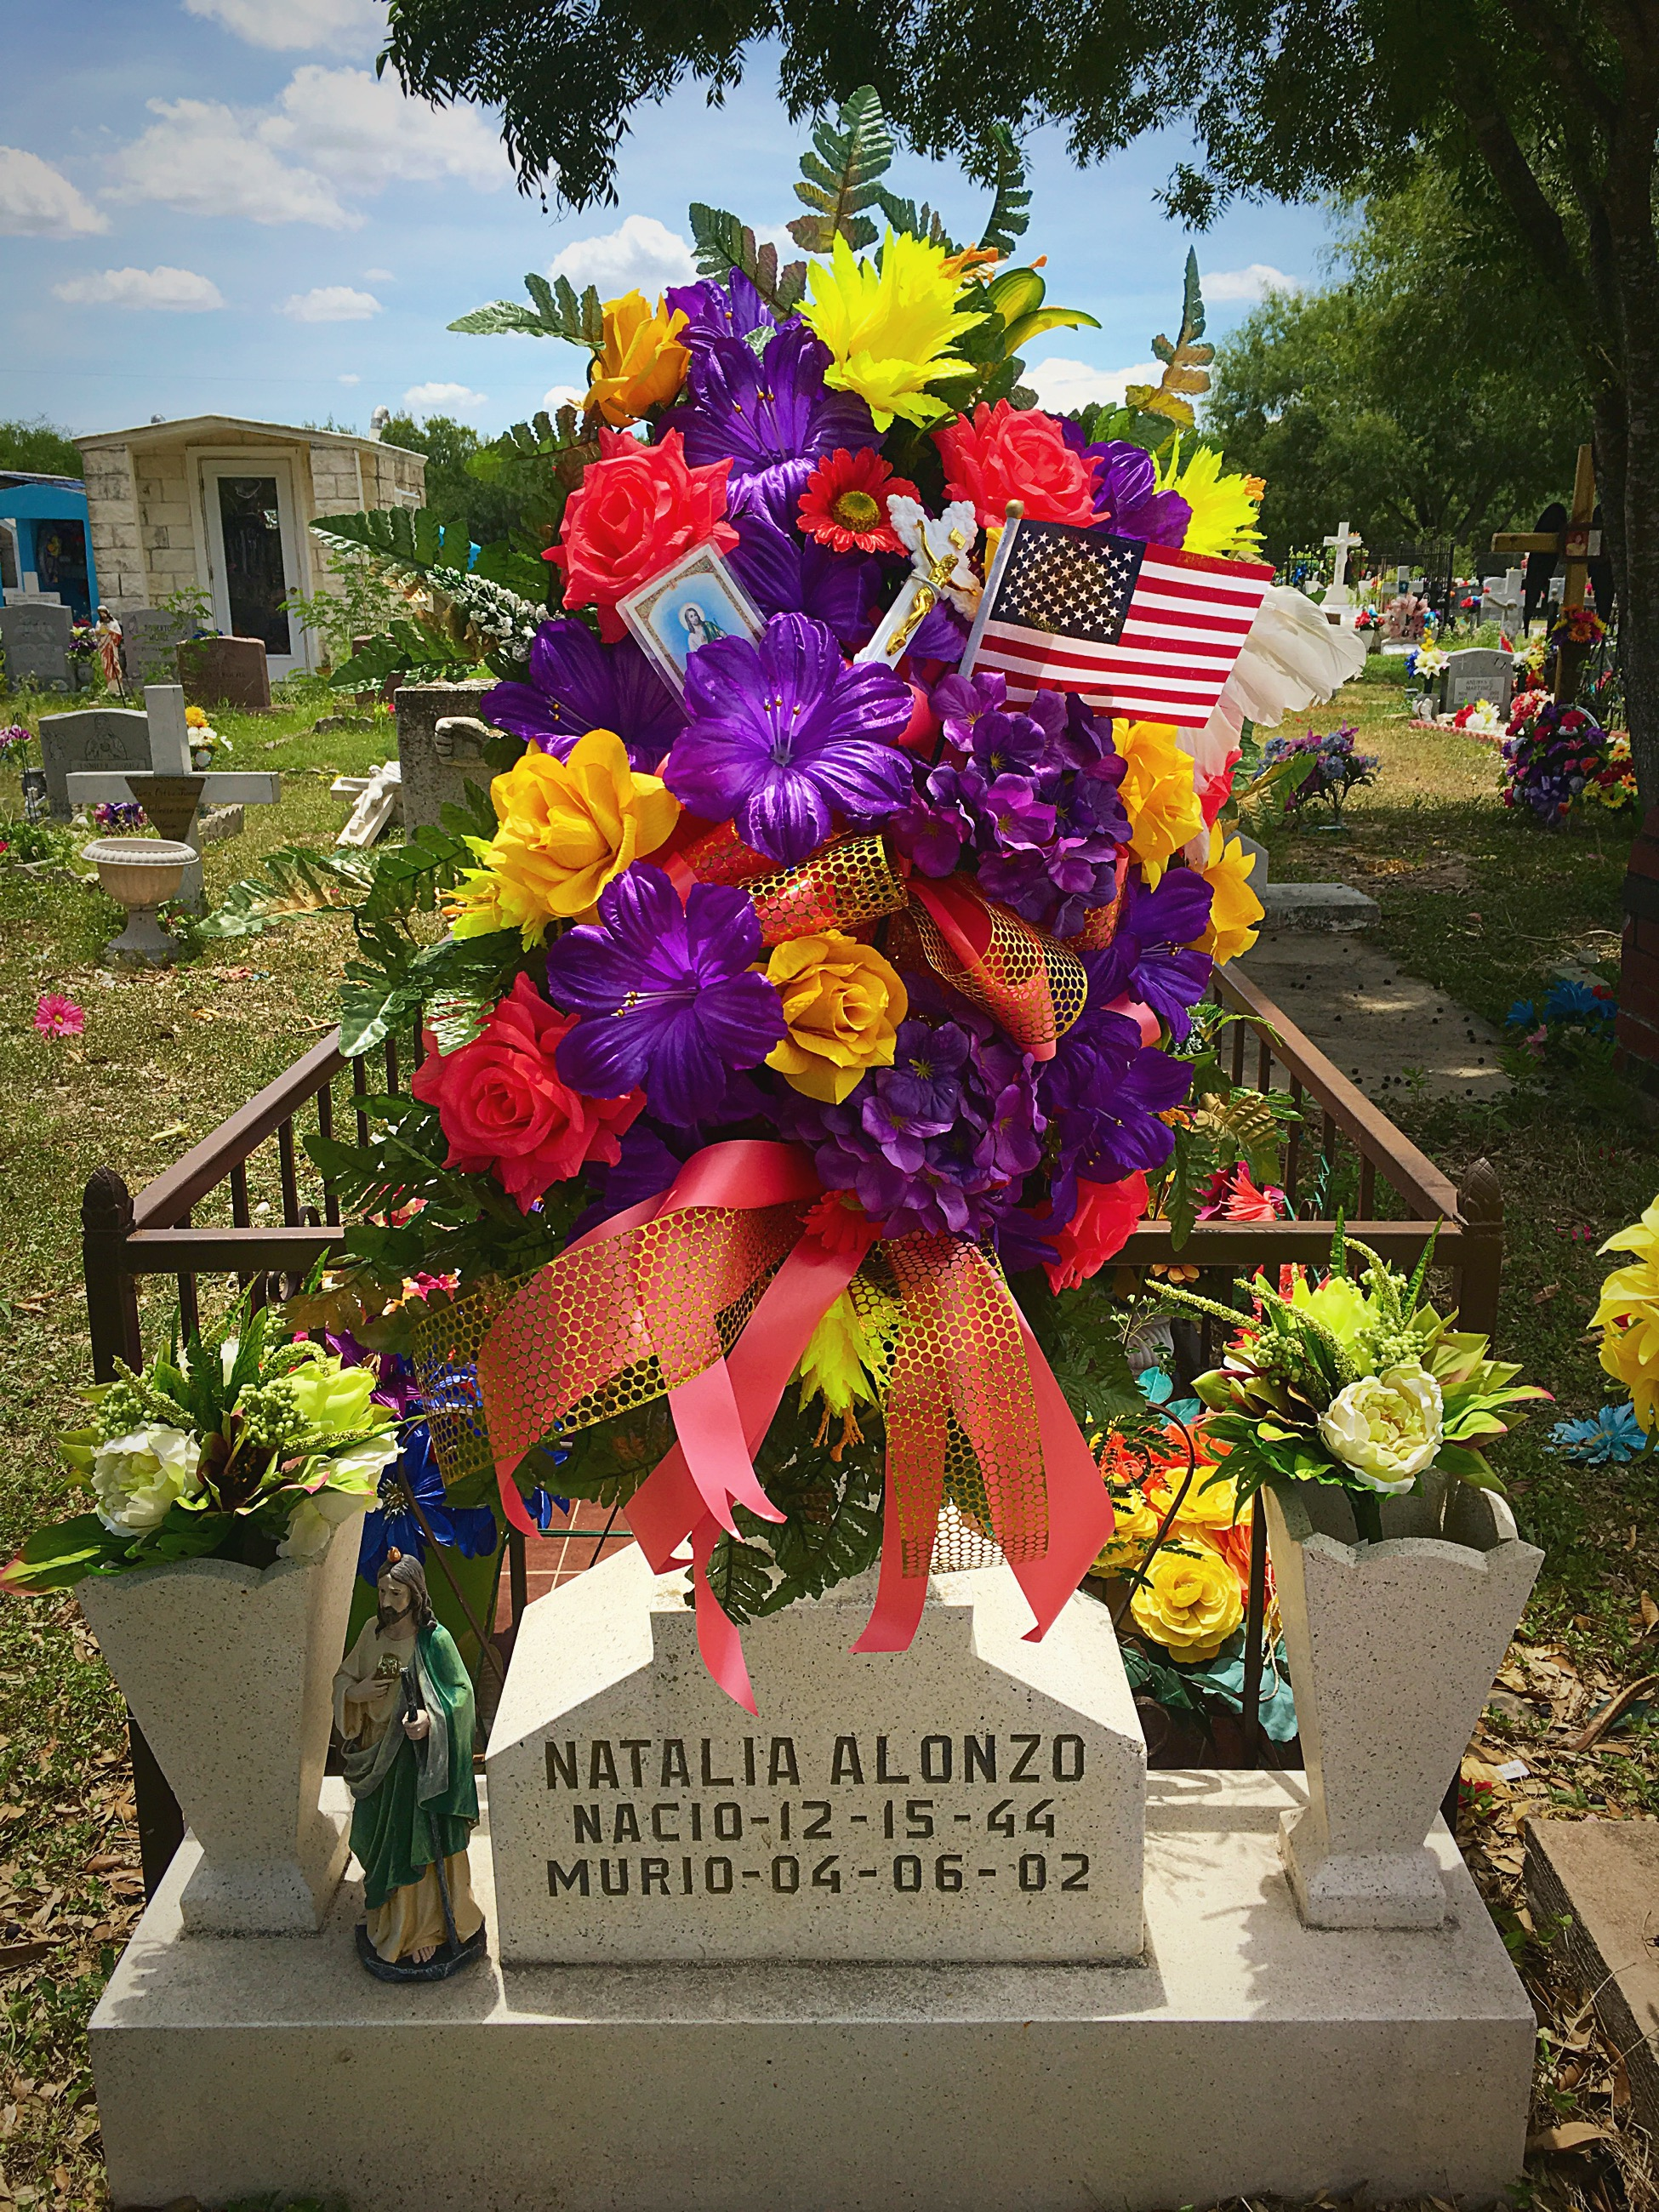 The grave of Natalia Alonzo, which features a new American flag.